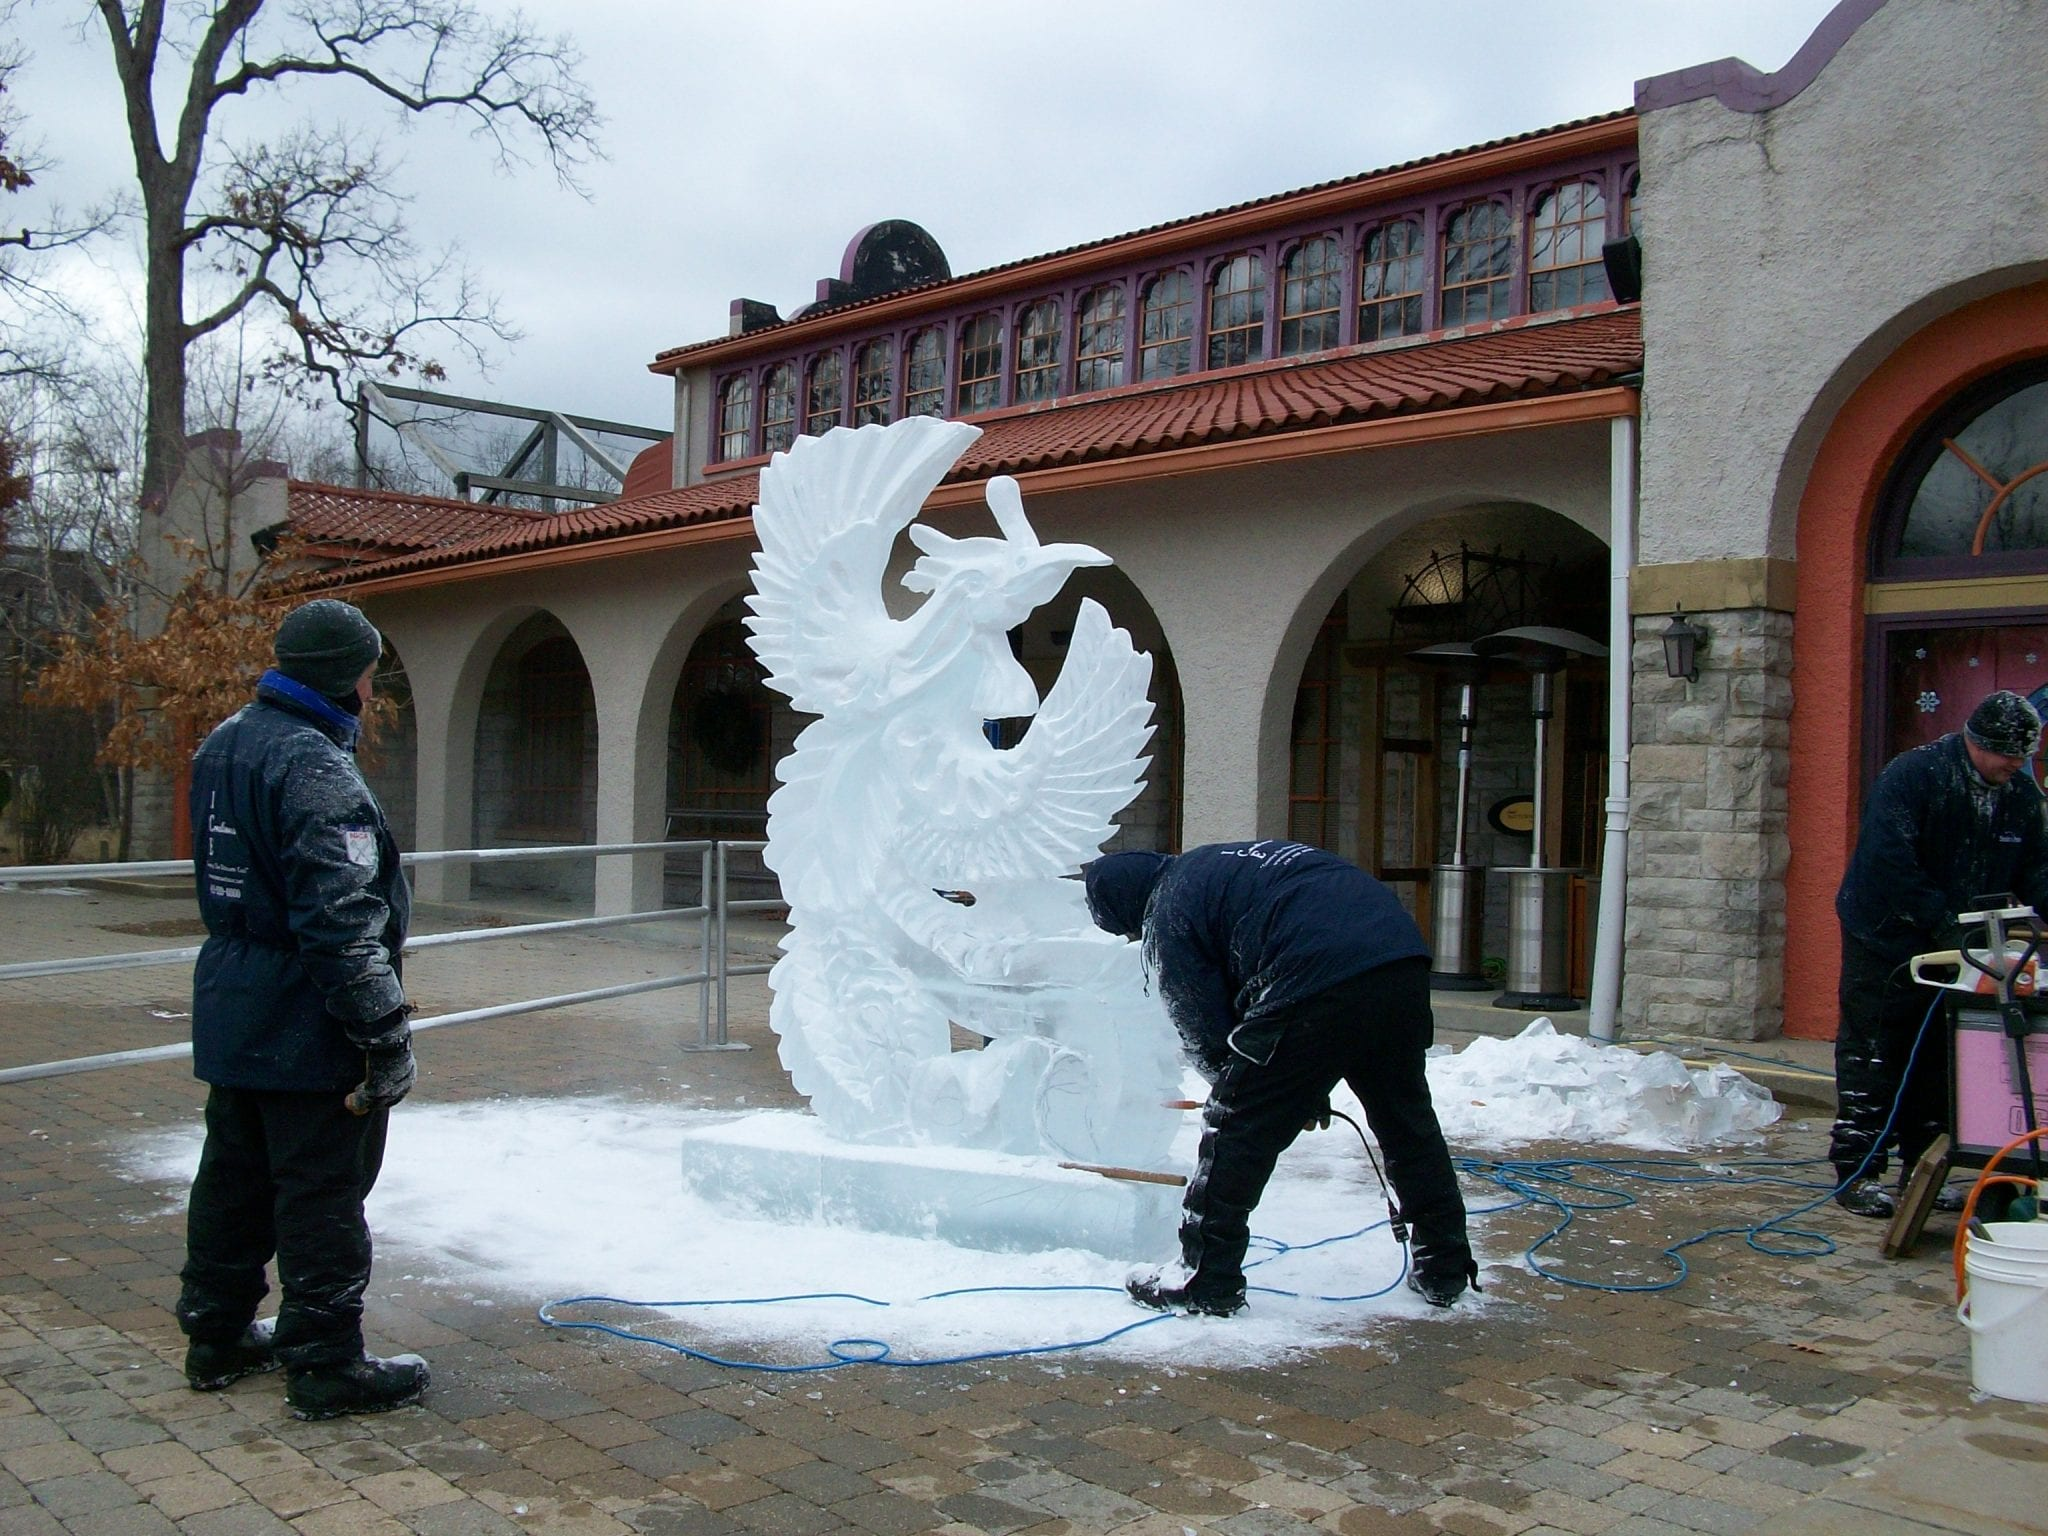 <h1>Ice Carving <br /> at Lights</h1>